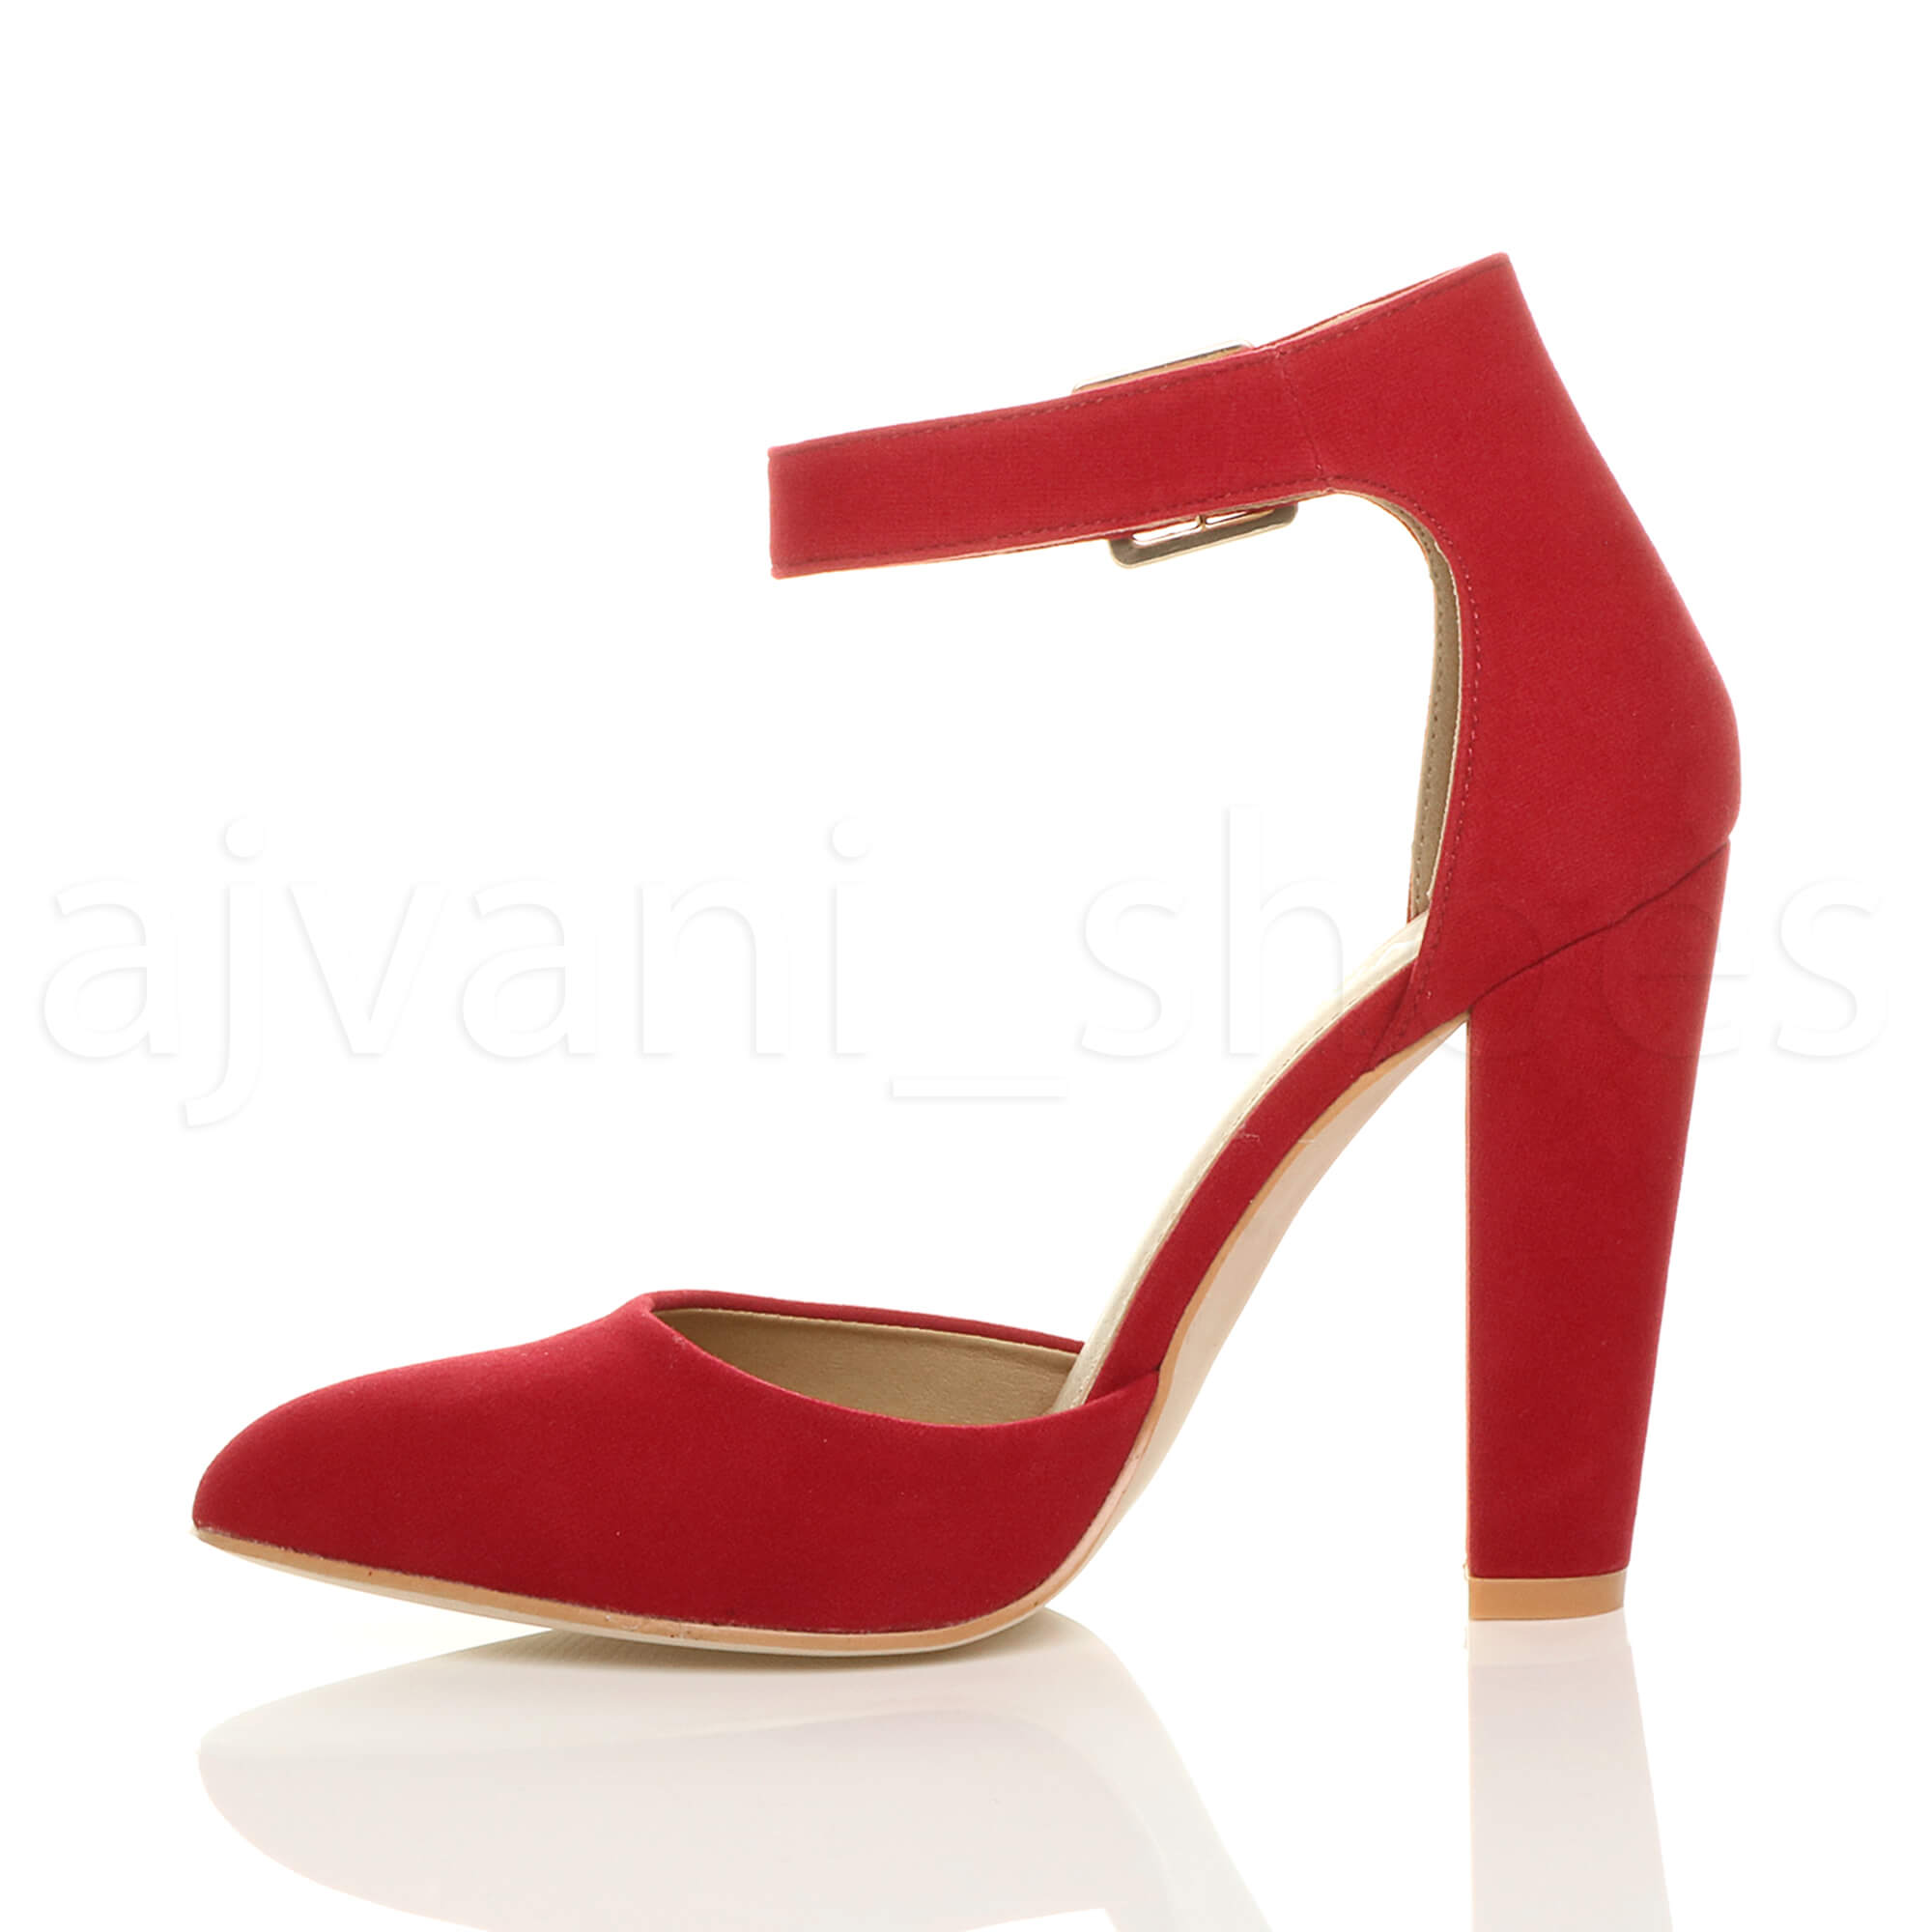 WOMENS-LADIES-HIGH-BLOCK-HEEL-ANKLE-STRAP-BUCKLE-POINTED-COURT-SHOES-SIZE thumbnail 102